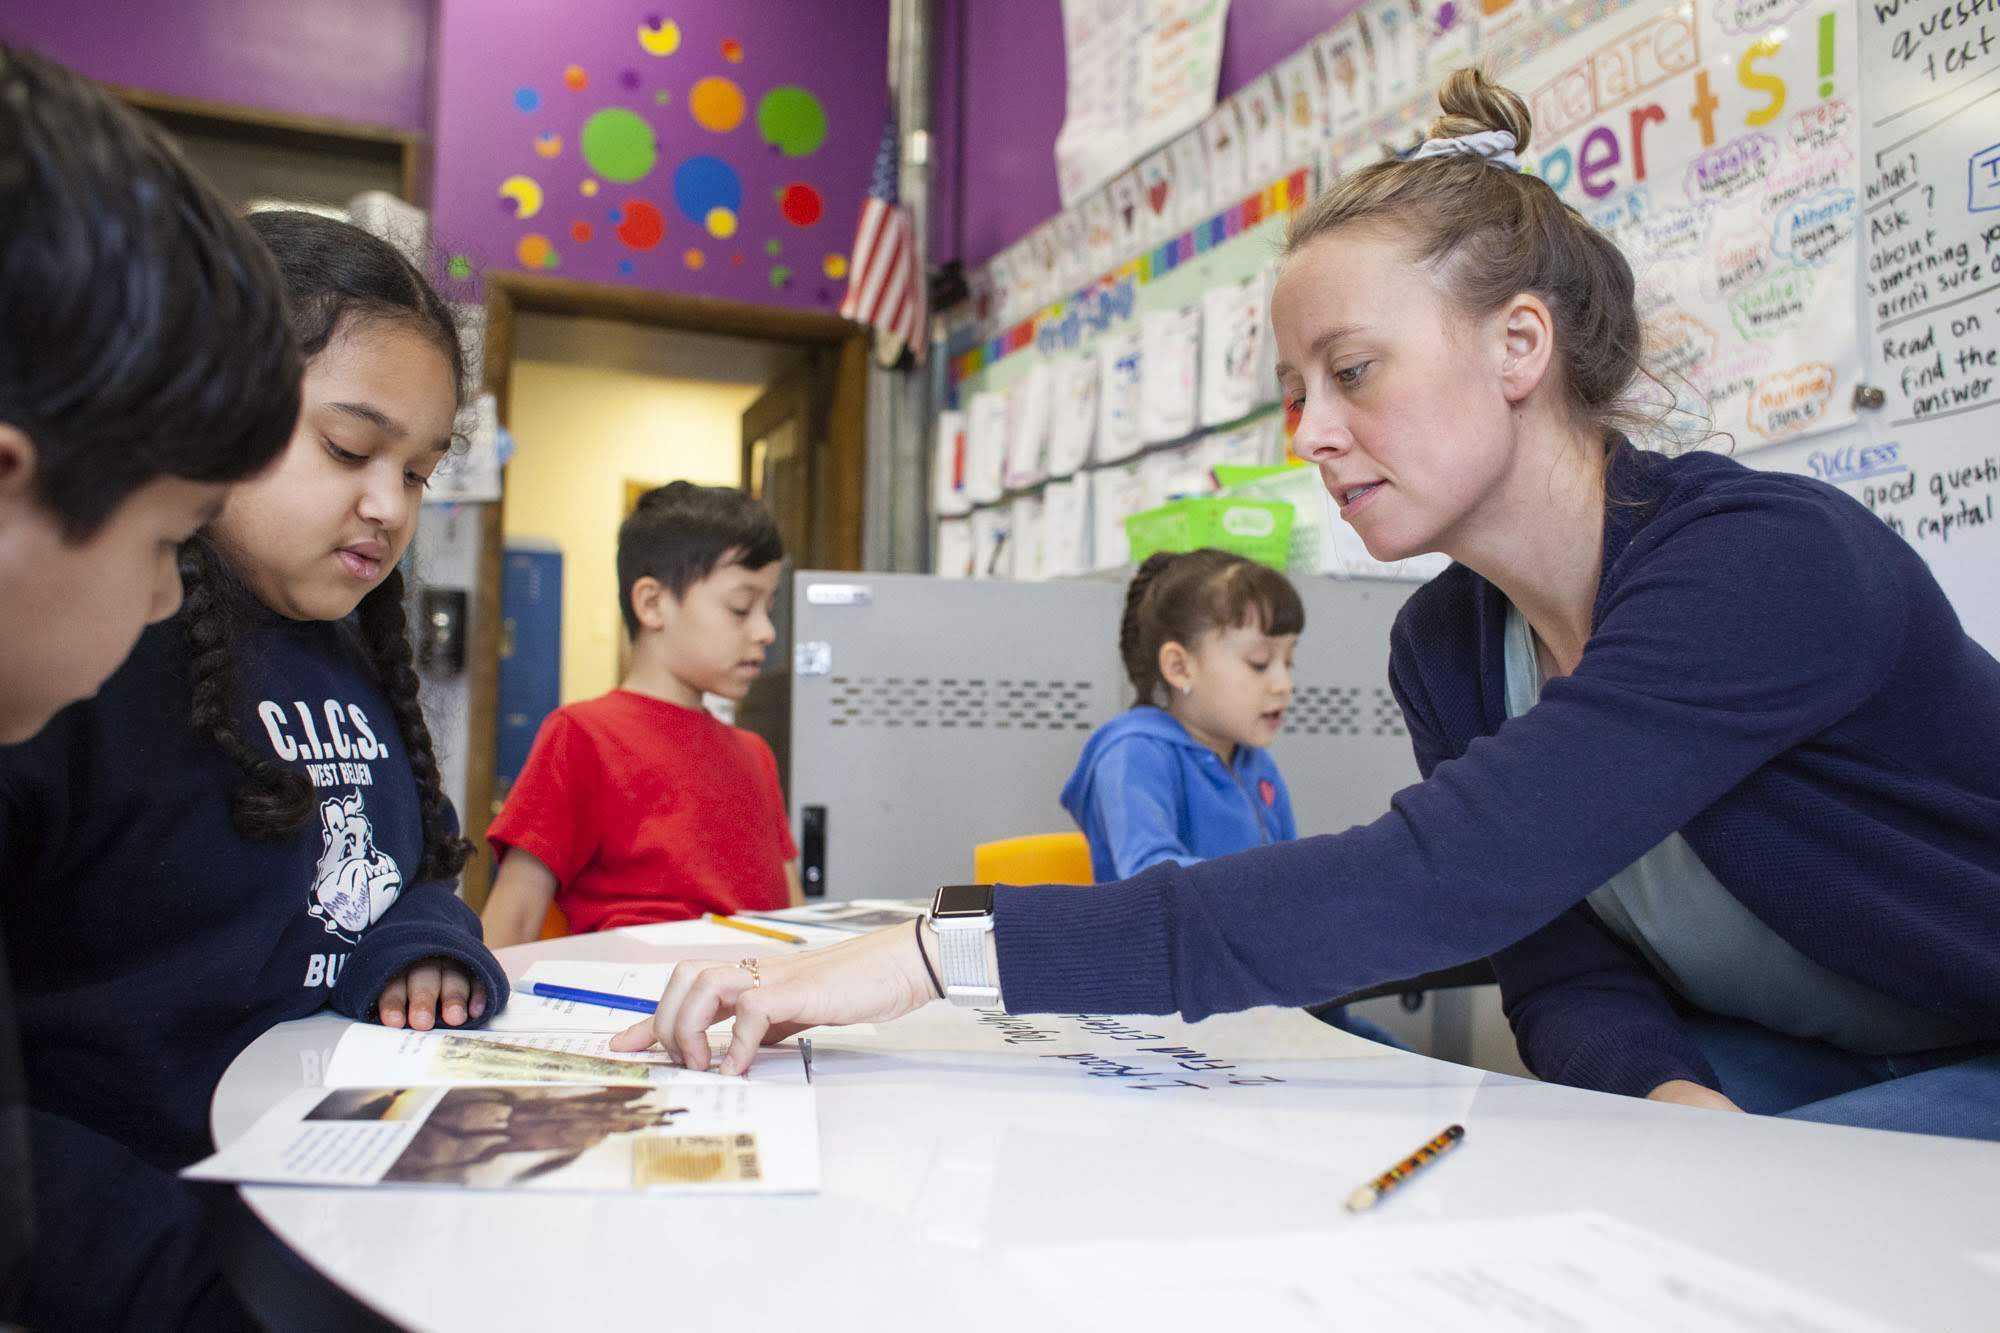 Teacher Kathy McInerney guides students during a small group lesson during class at CICS West Belden.